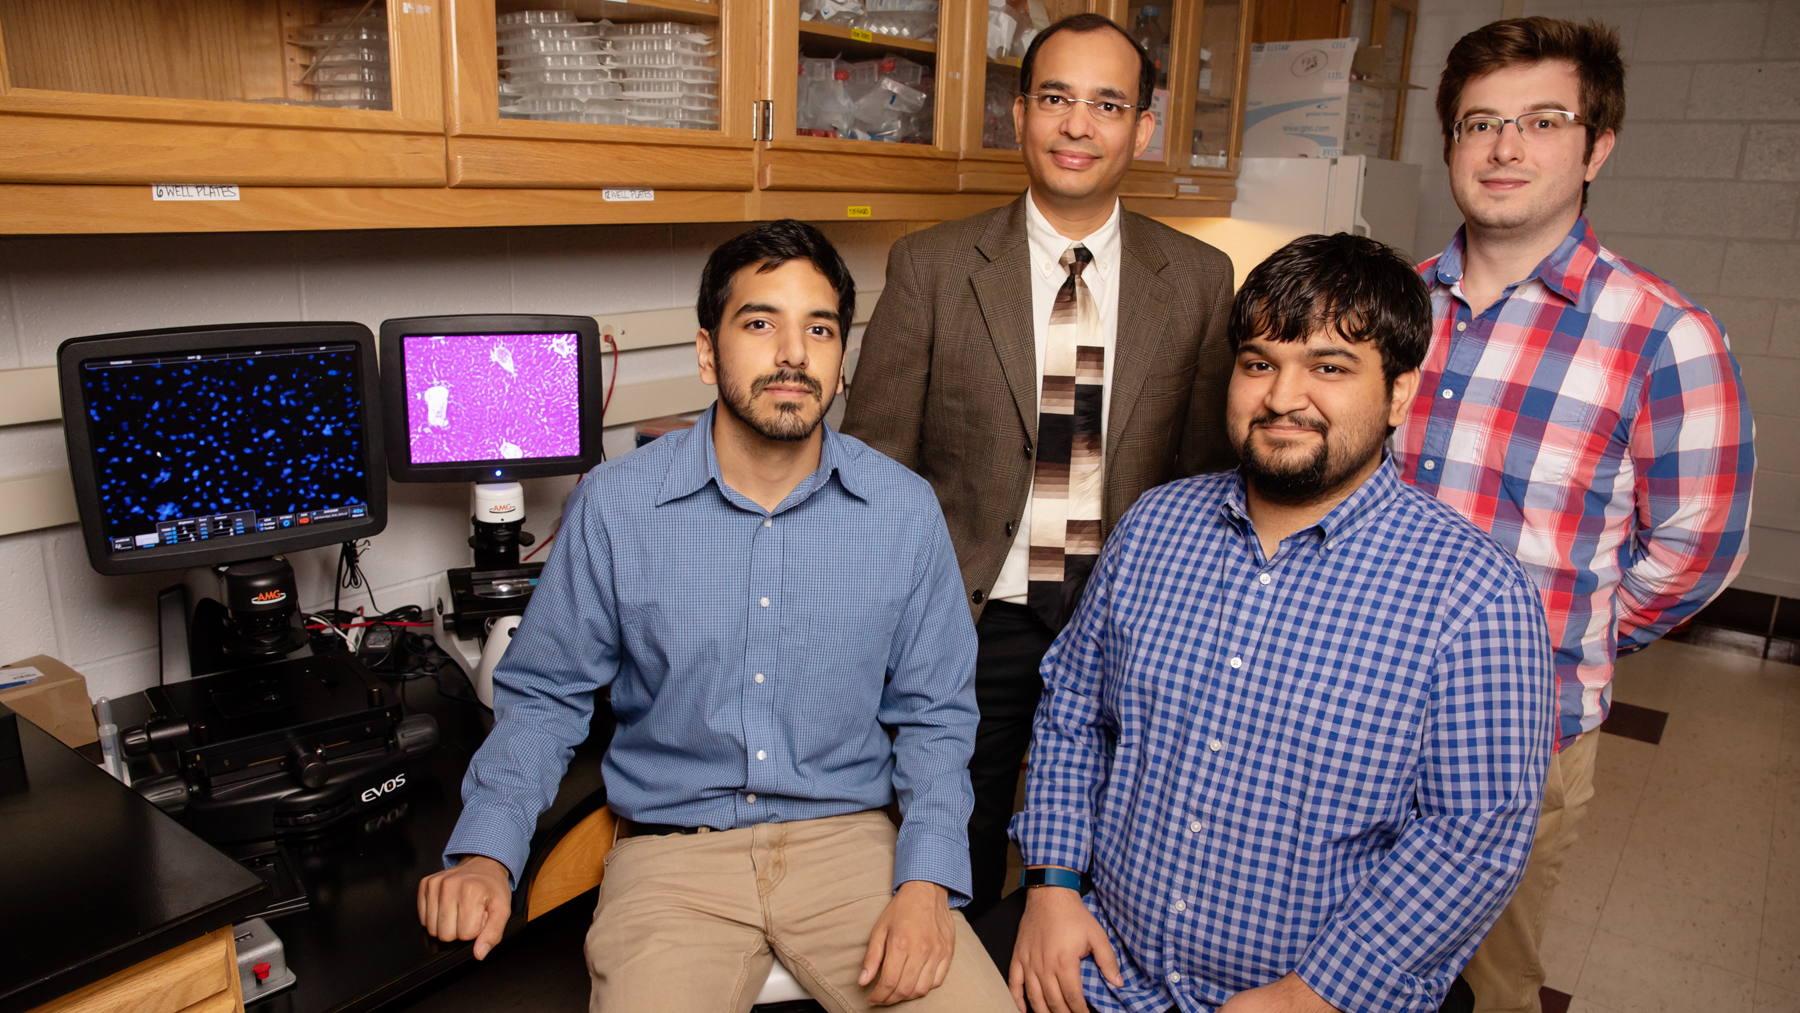 Biochemistry professor Auinash Kalsotra, second from left, and his team, including, from left, graduate students Waqar Arif, Joseph Seimetz and Sushant Bangru